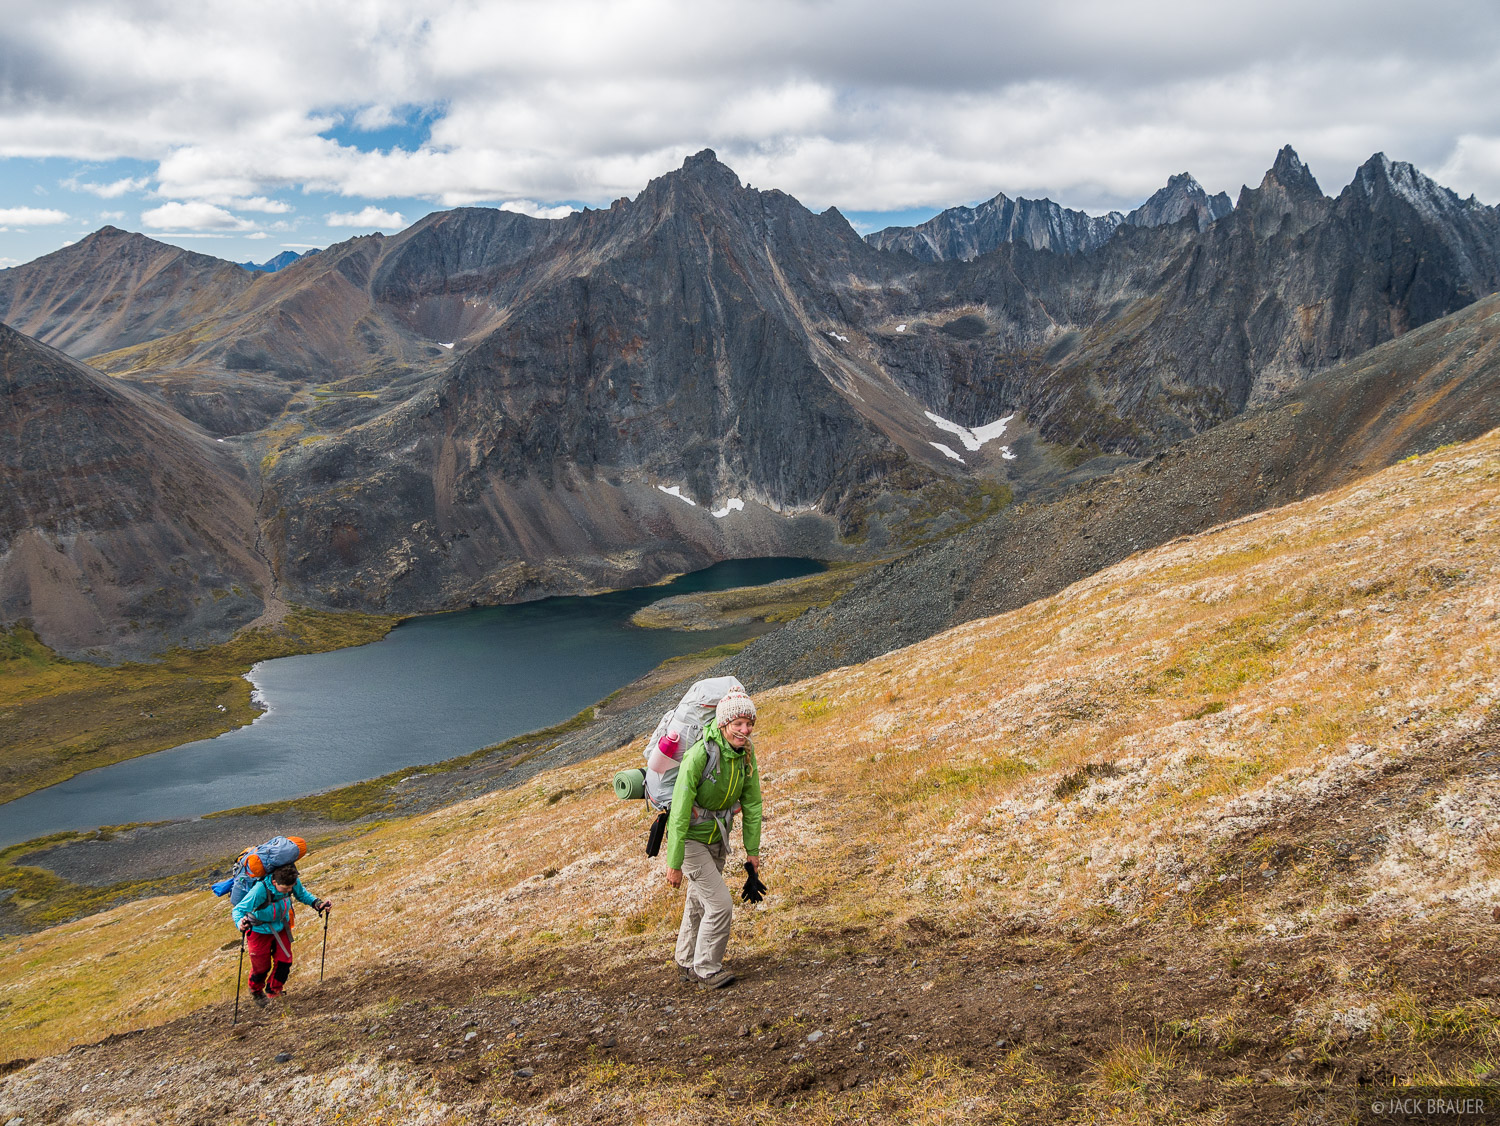 Canada, Glissade Pass, Tombstone Territorial Park, Yukon, hiking, Tombstone Range, photo